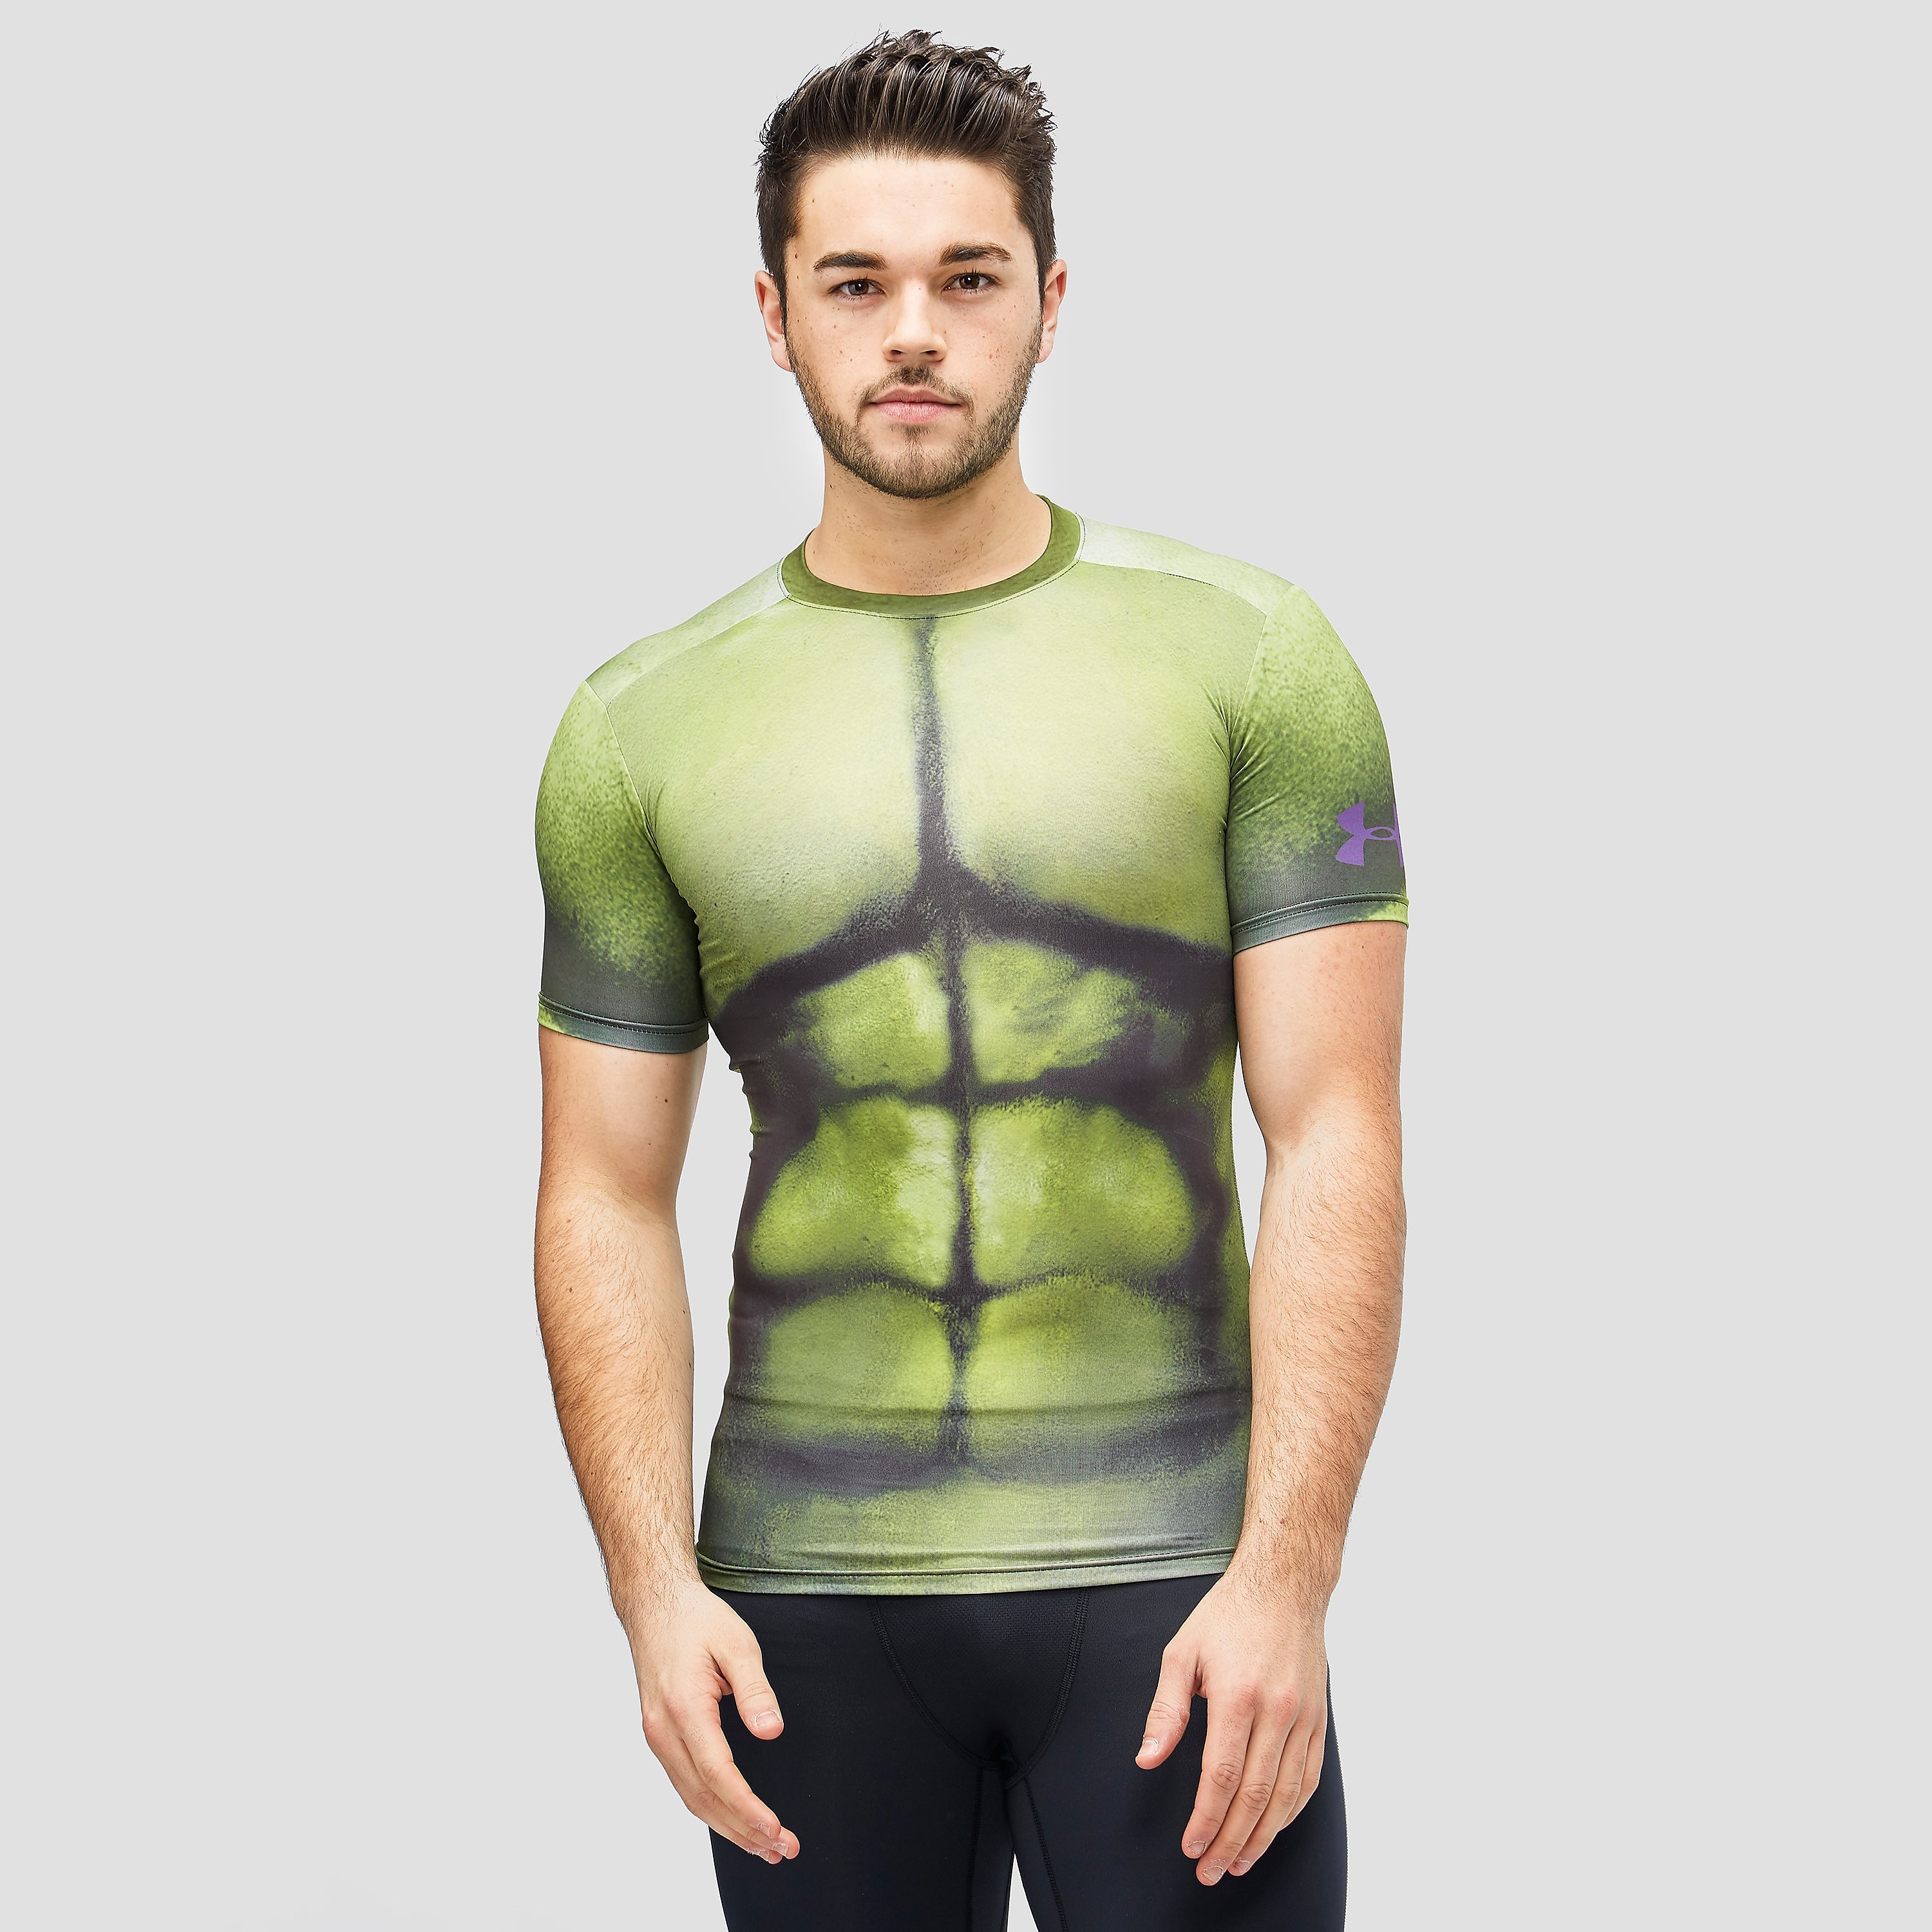 Under Armour Alter Ego Hulk Compression Short Sleeve T-Shirt